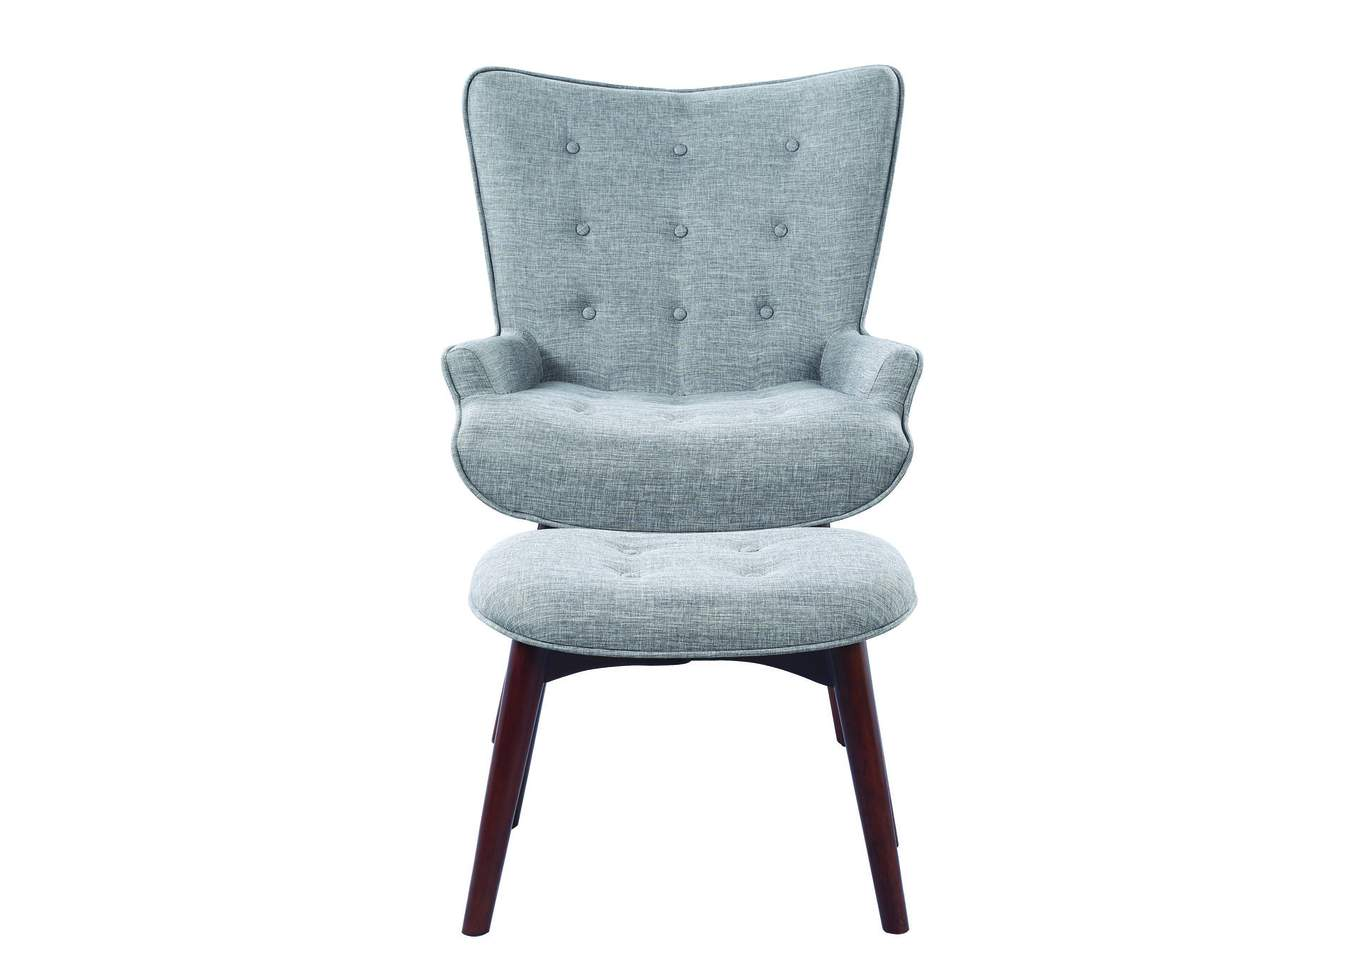 Stupendous Austins Couch Potatoes Furniture Stores Austin Texas Blue Ncnpc Chair Design For Home Ncnpcorg